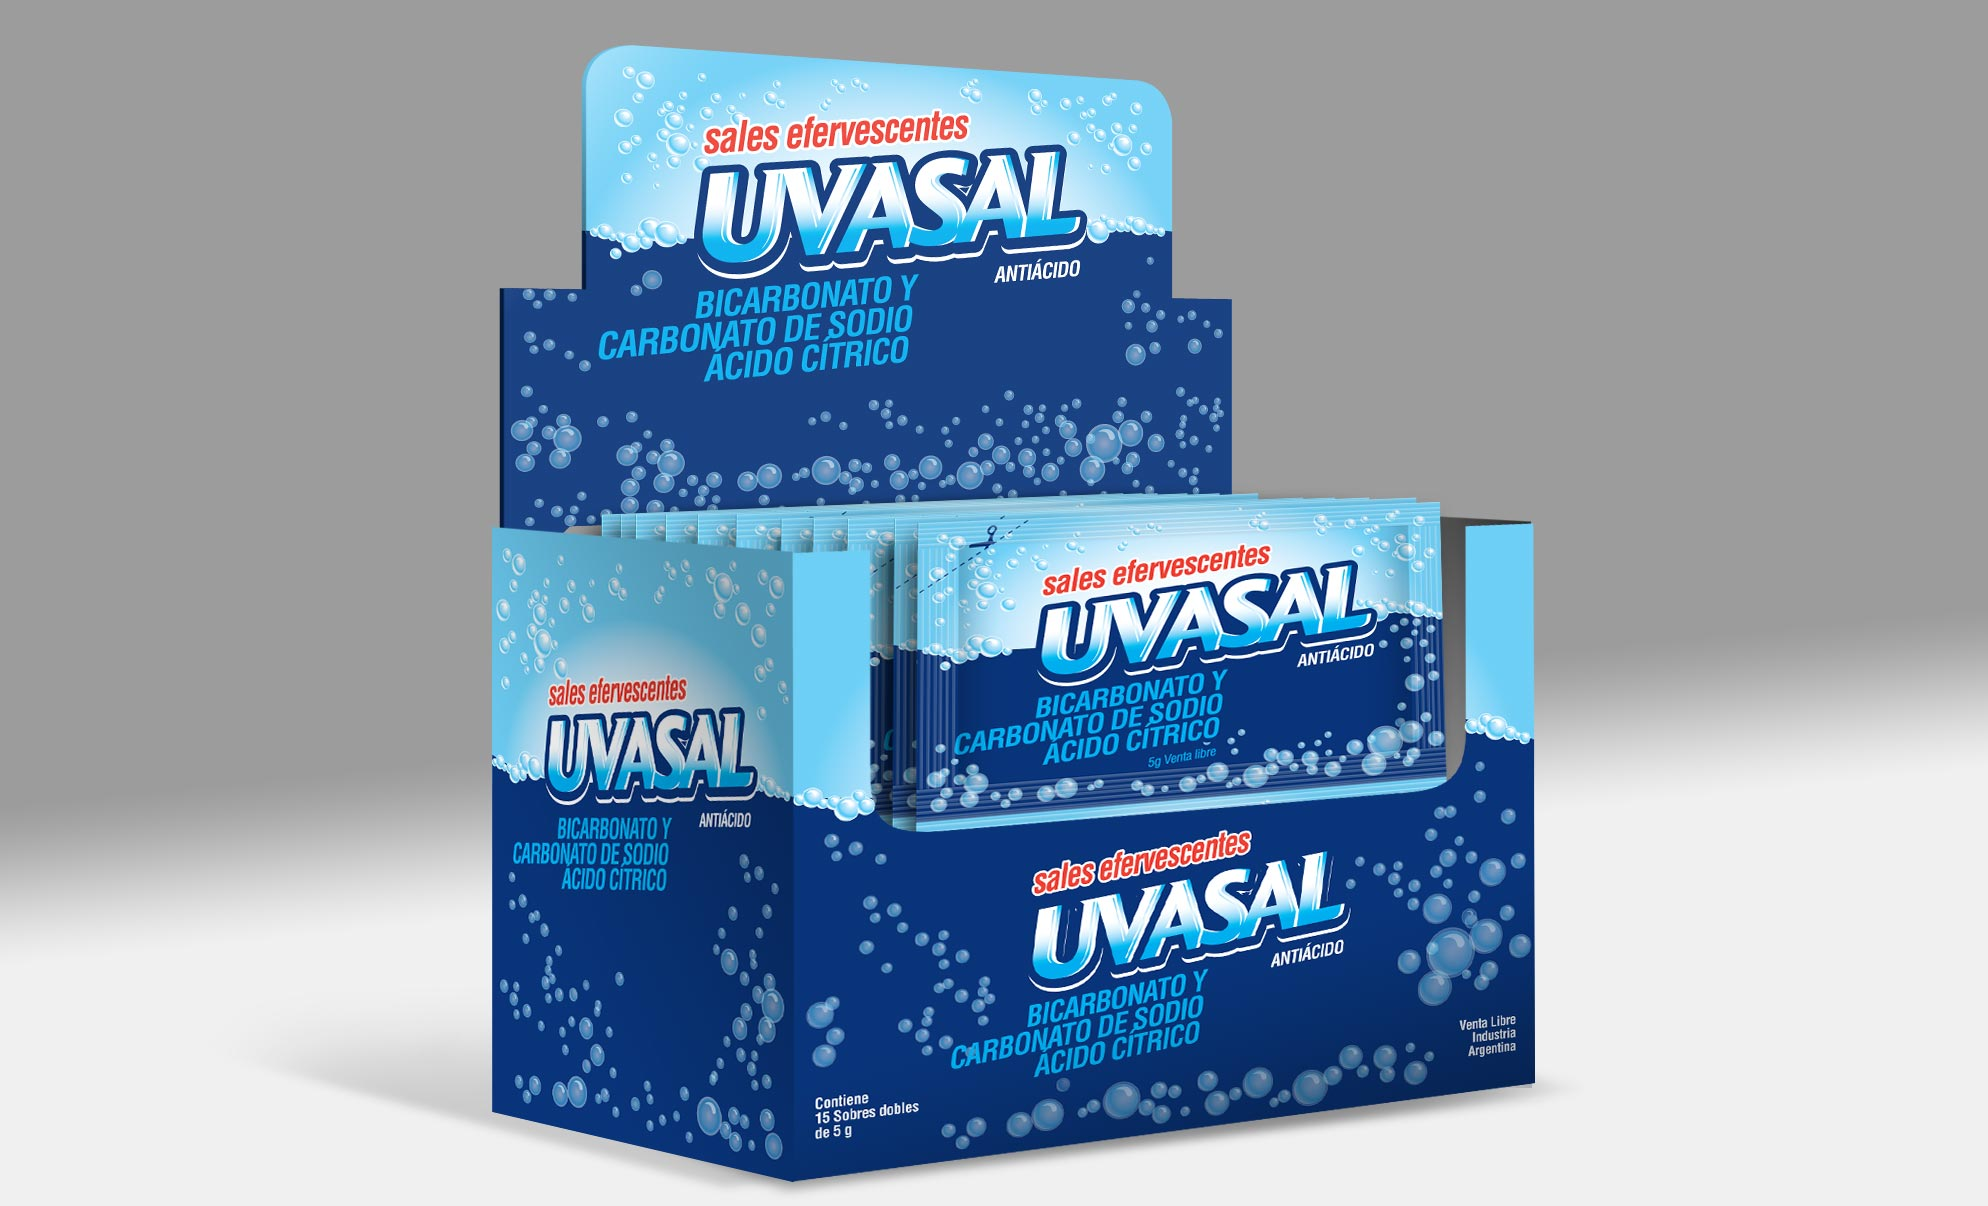 Glaxosmithkline Uvasal Packaging